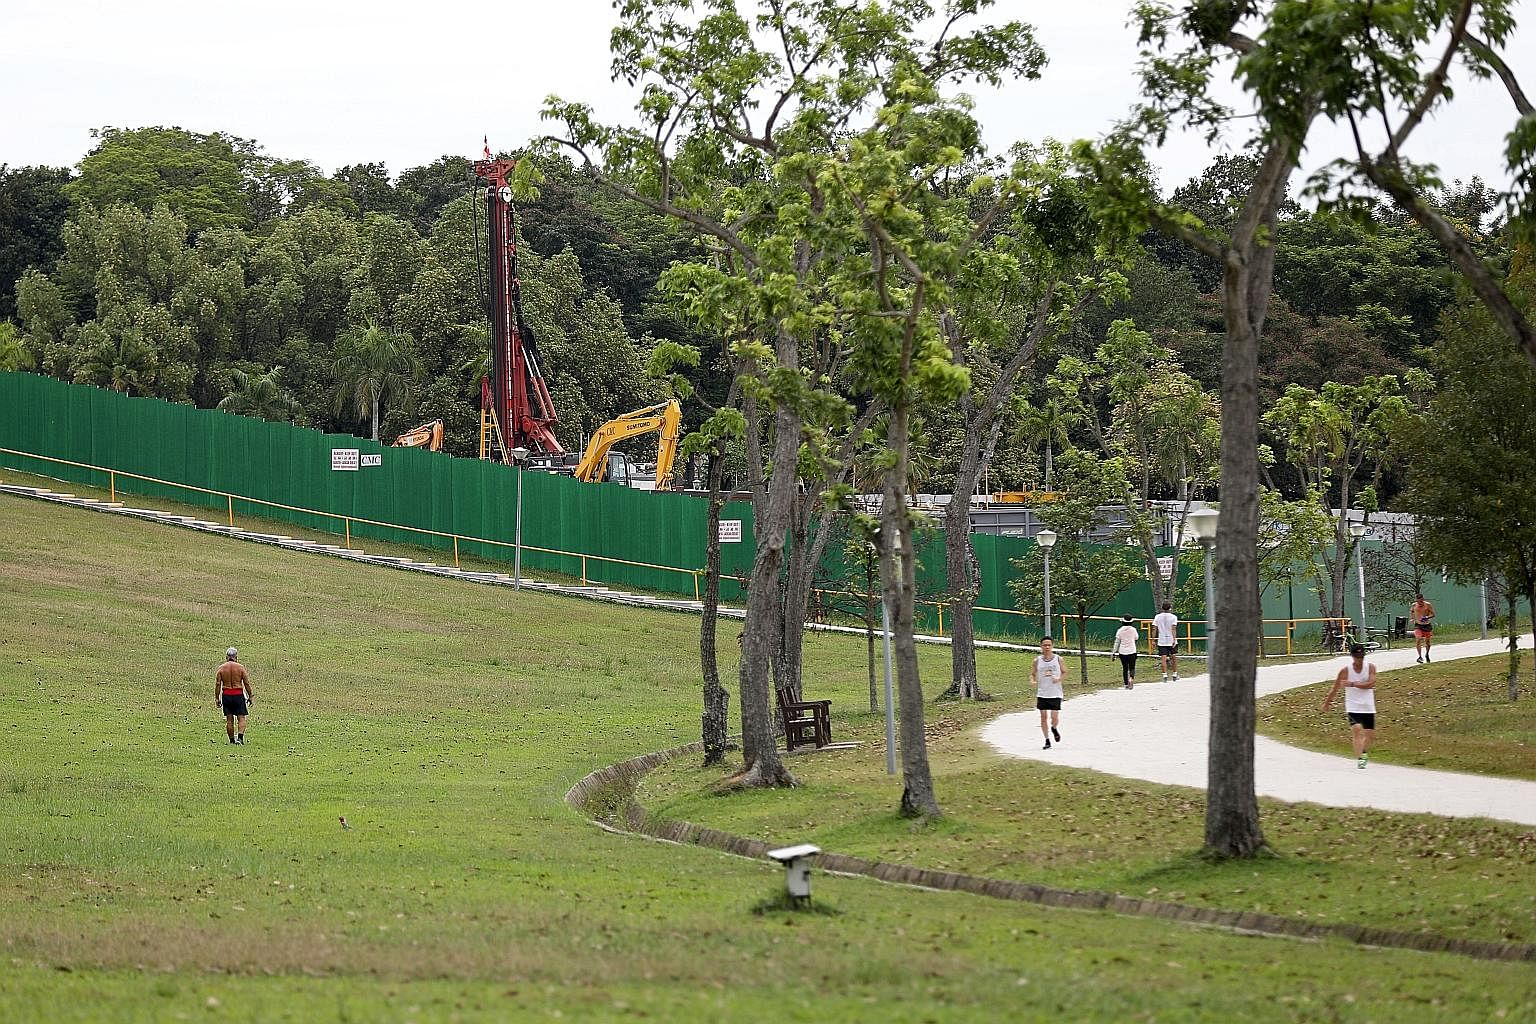 People exercising in Bedok Reservoir yesterday. Unlinked cases remain a worry as it means that someone with the disease has not been identified. Health Minister Gan Kim Yong said such cases need to be reduced to as low as possible.